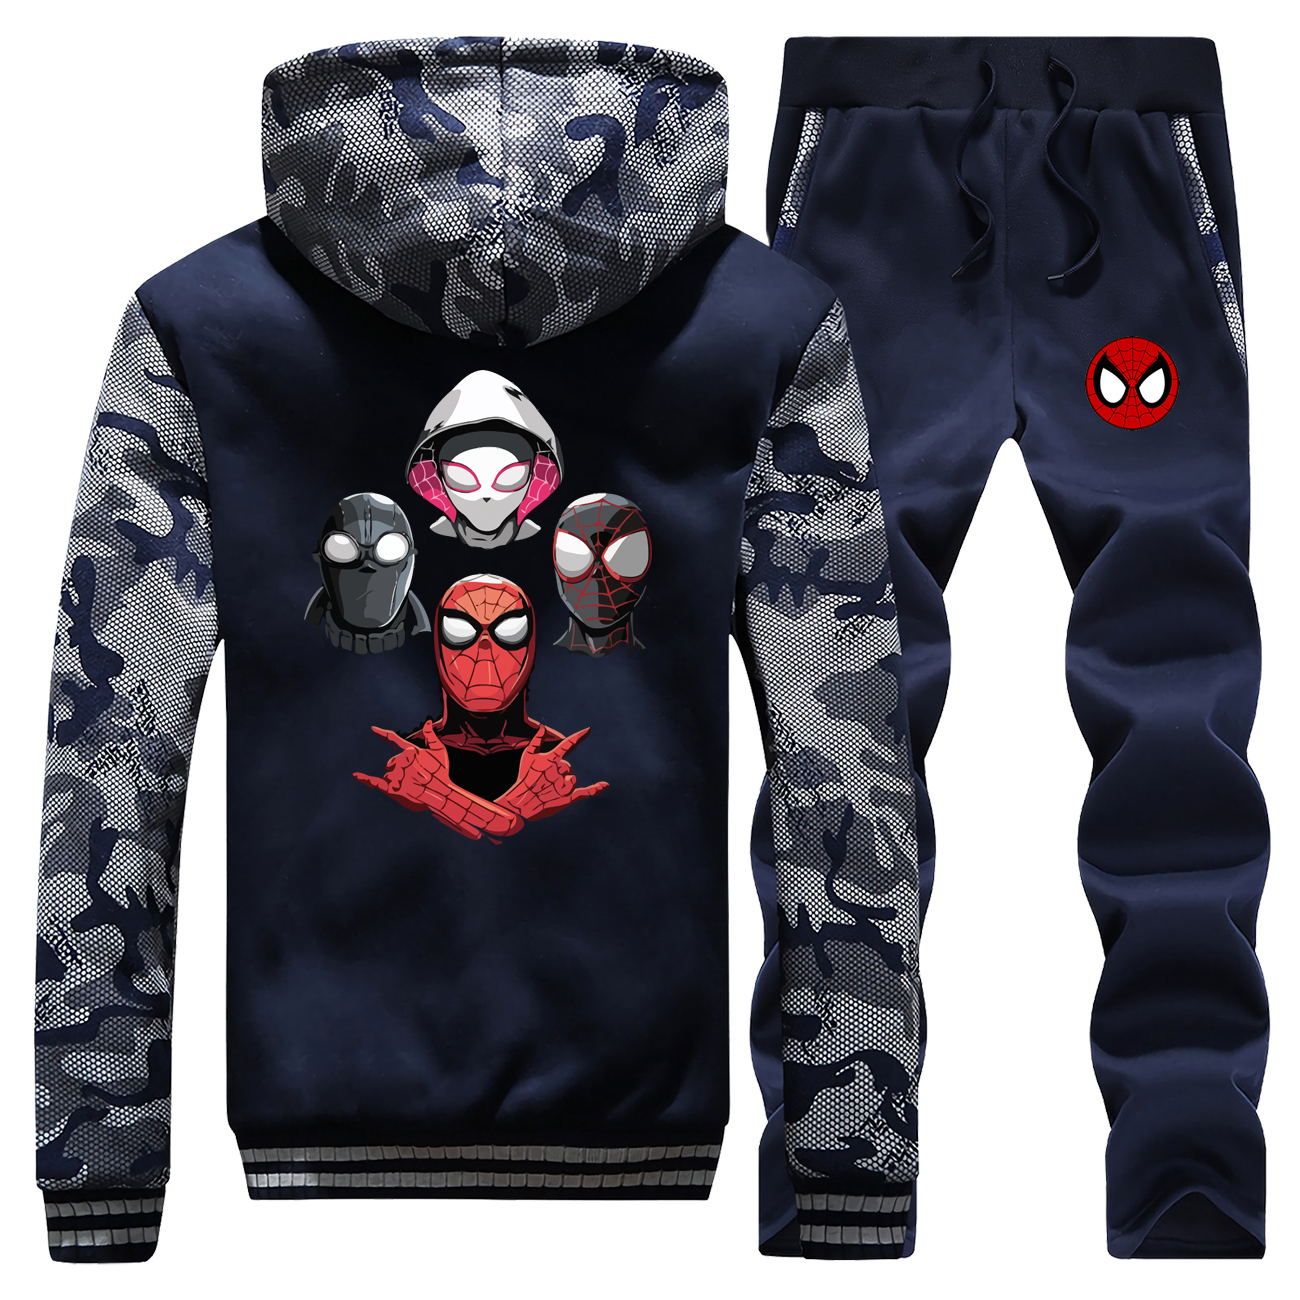 New 2019 Winter Men Camouflage Hoodies Spiderman Parallel Universe Cartoon Coat Thick Sportswear Warm Jackets+2 Piece Set Pants